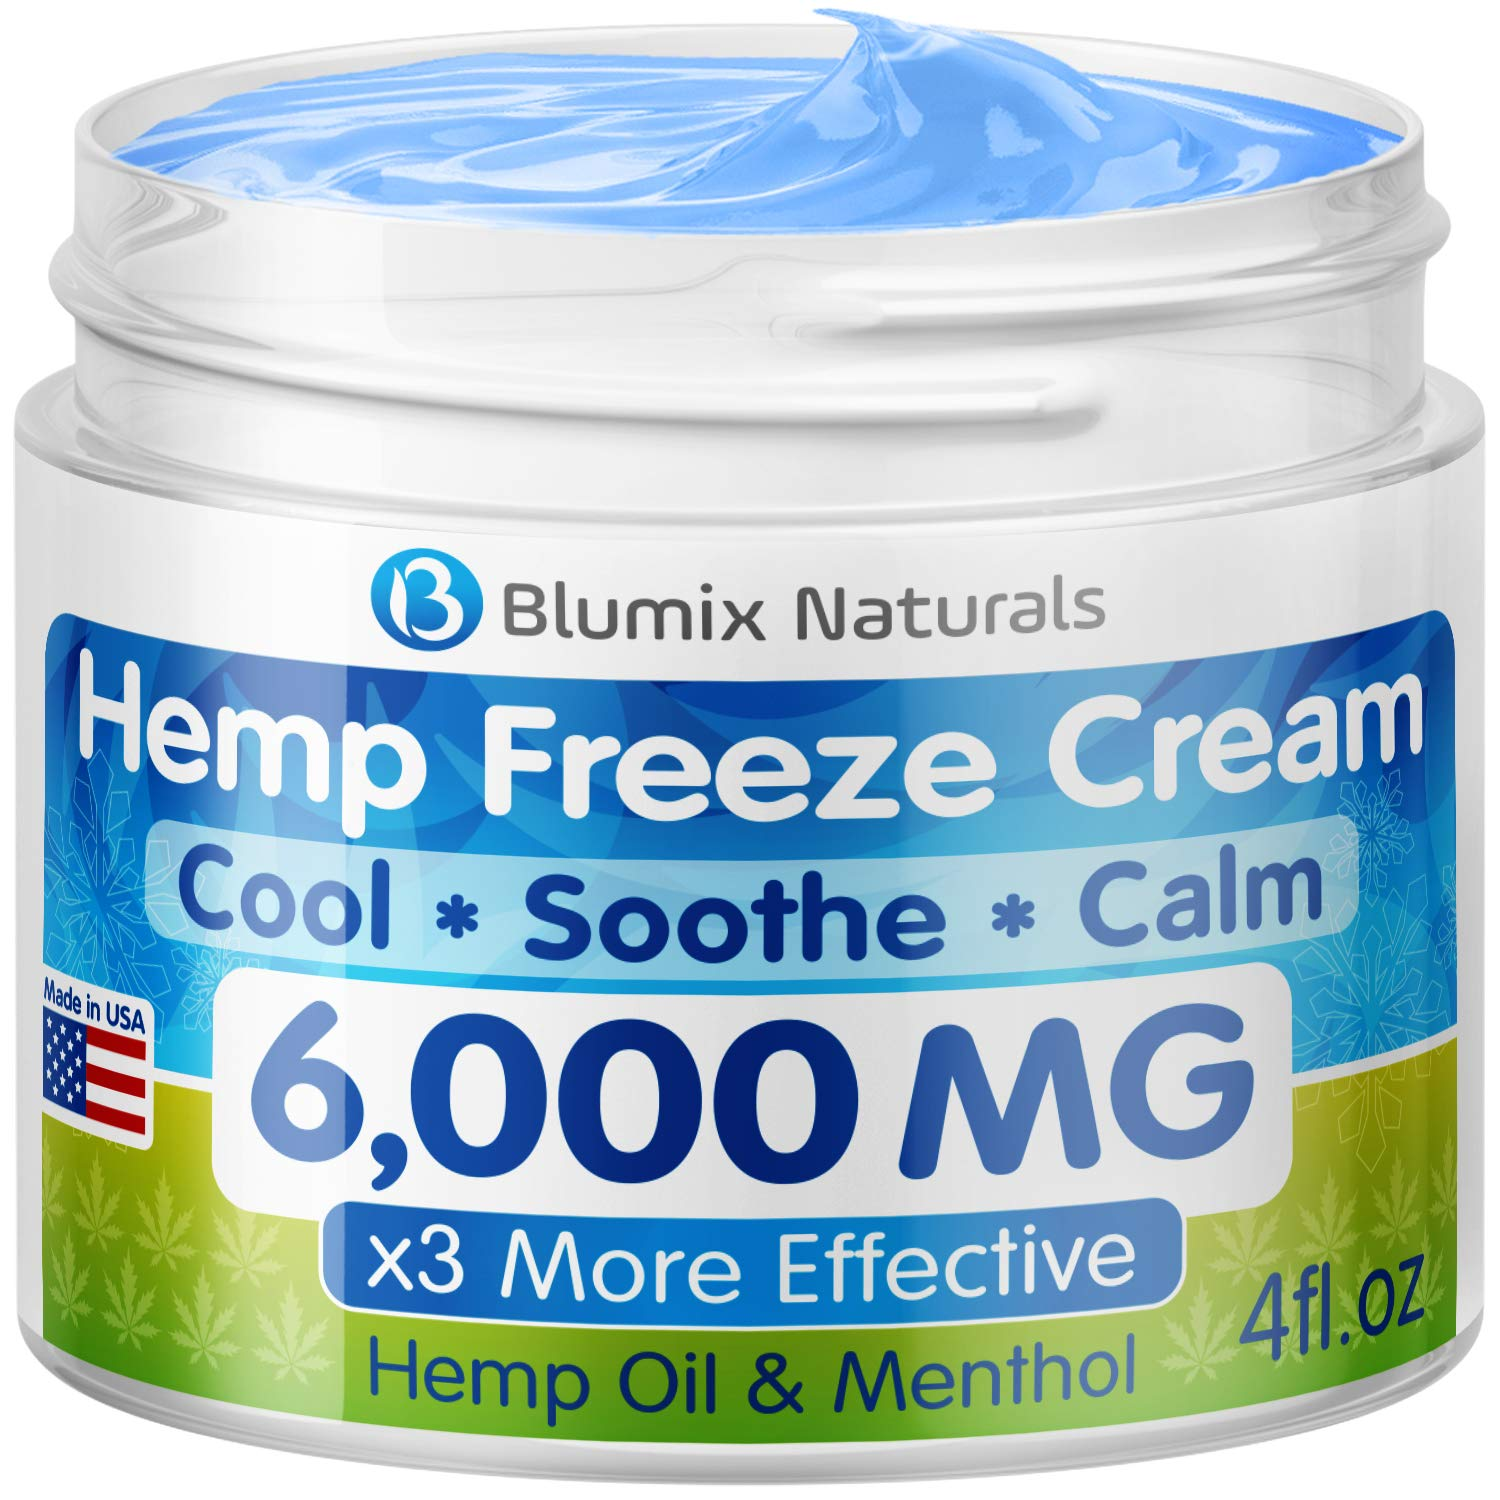 BLUMIX Hemp Cream for Pain Relief 6000 mg - Made in USA - Hemp Oil & Menthol Blend - Cooling & Soothing Effect - for Inflammation, Joint, Back, Knee, Nerves Pain & Sore Muscles - Natural Hemp Extract by BLUMIX-Naturals